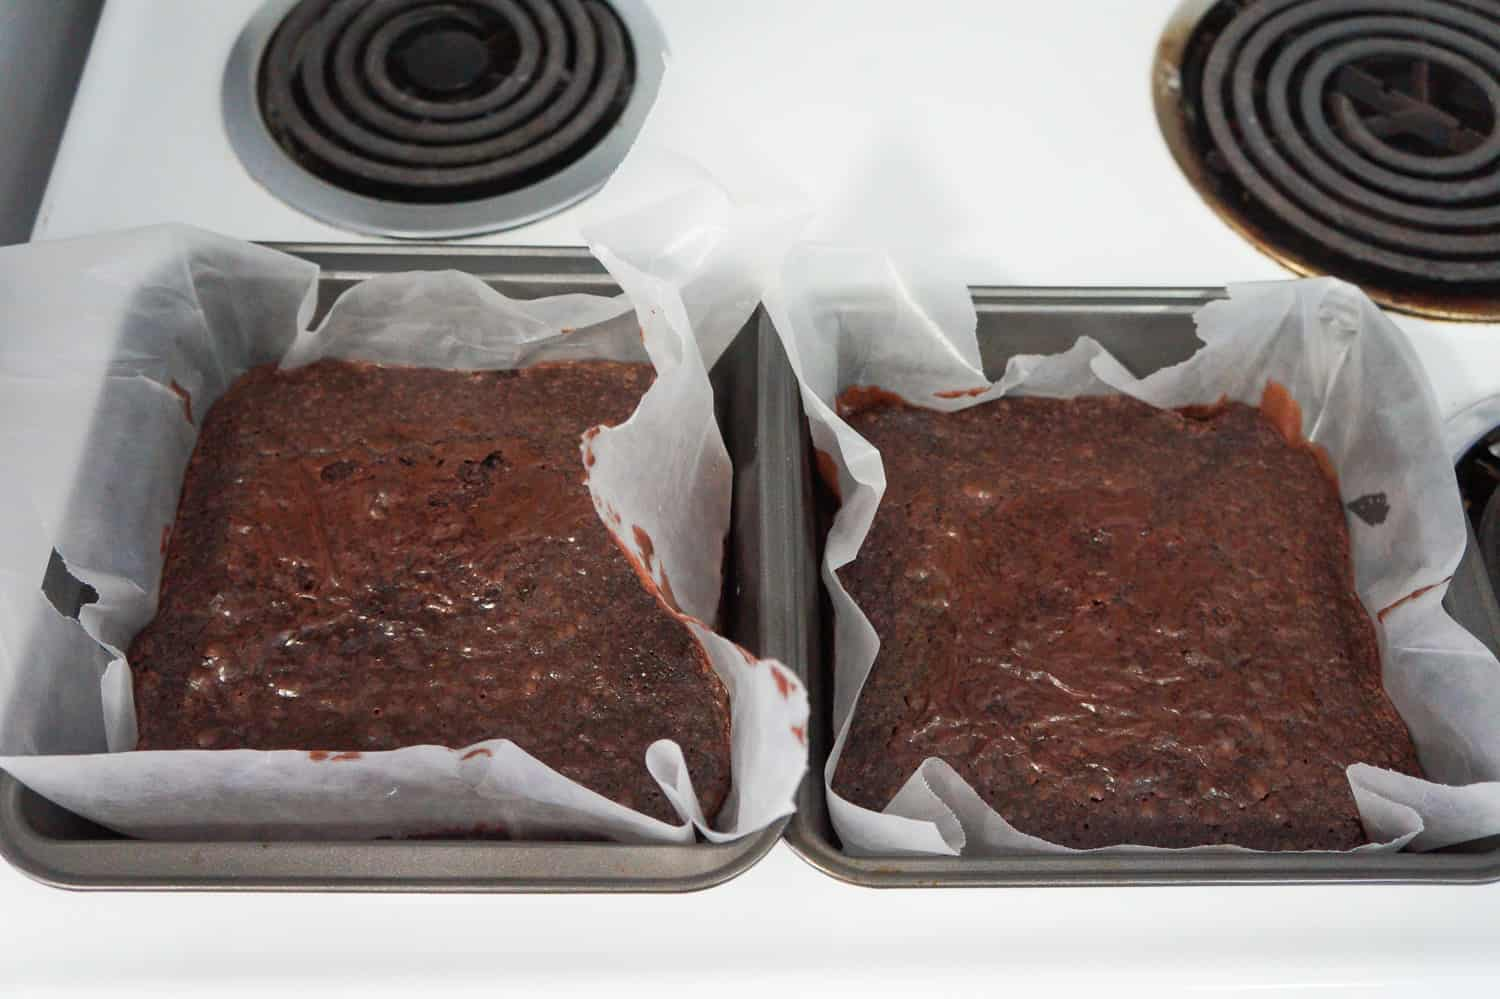 baked brownies in two 8 inch square pans